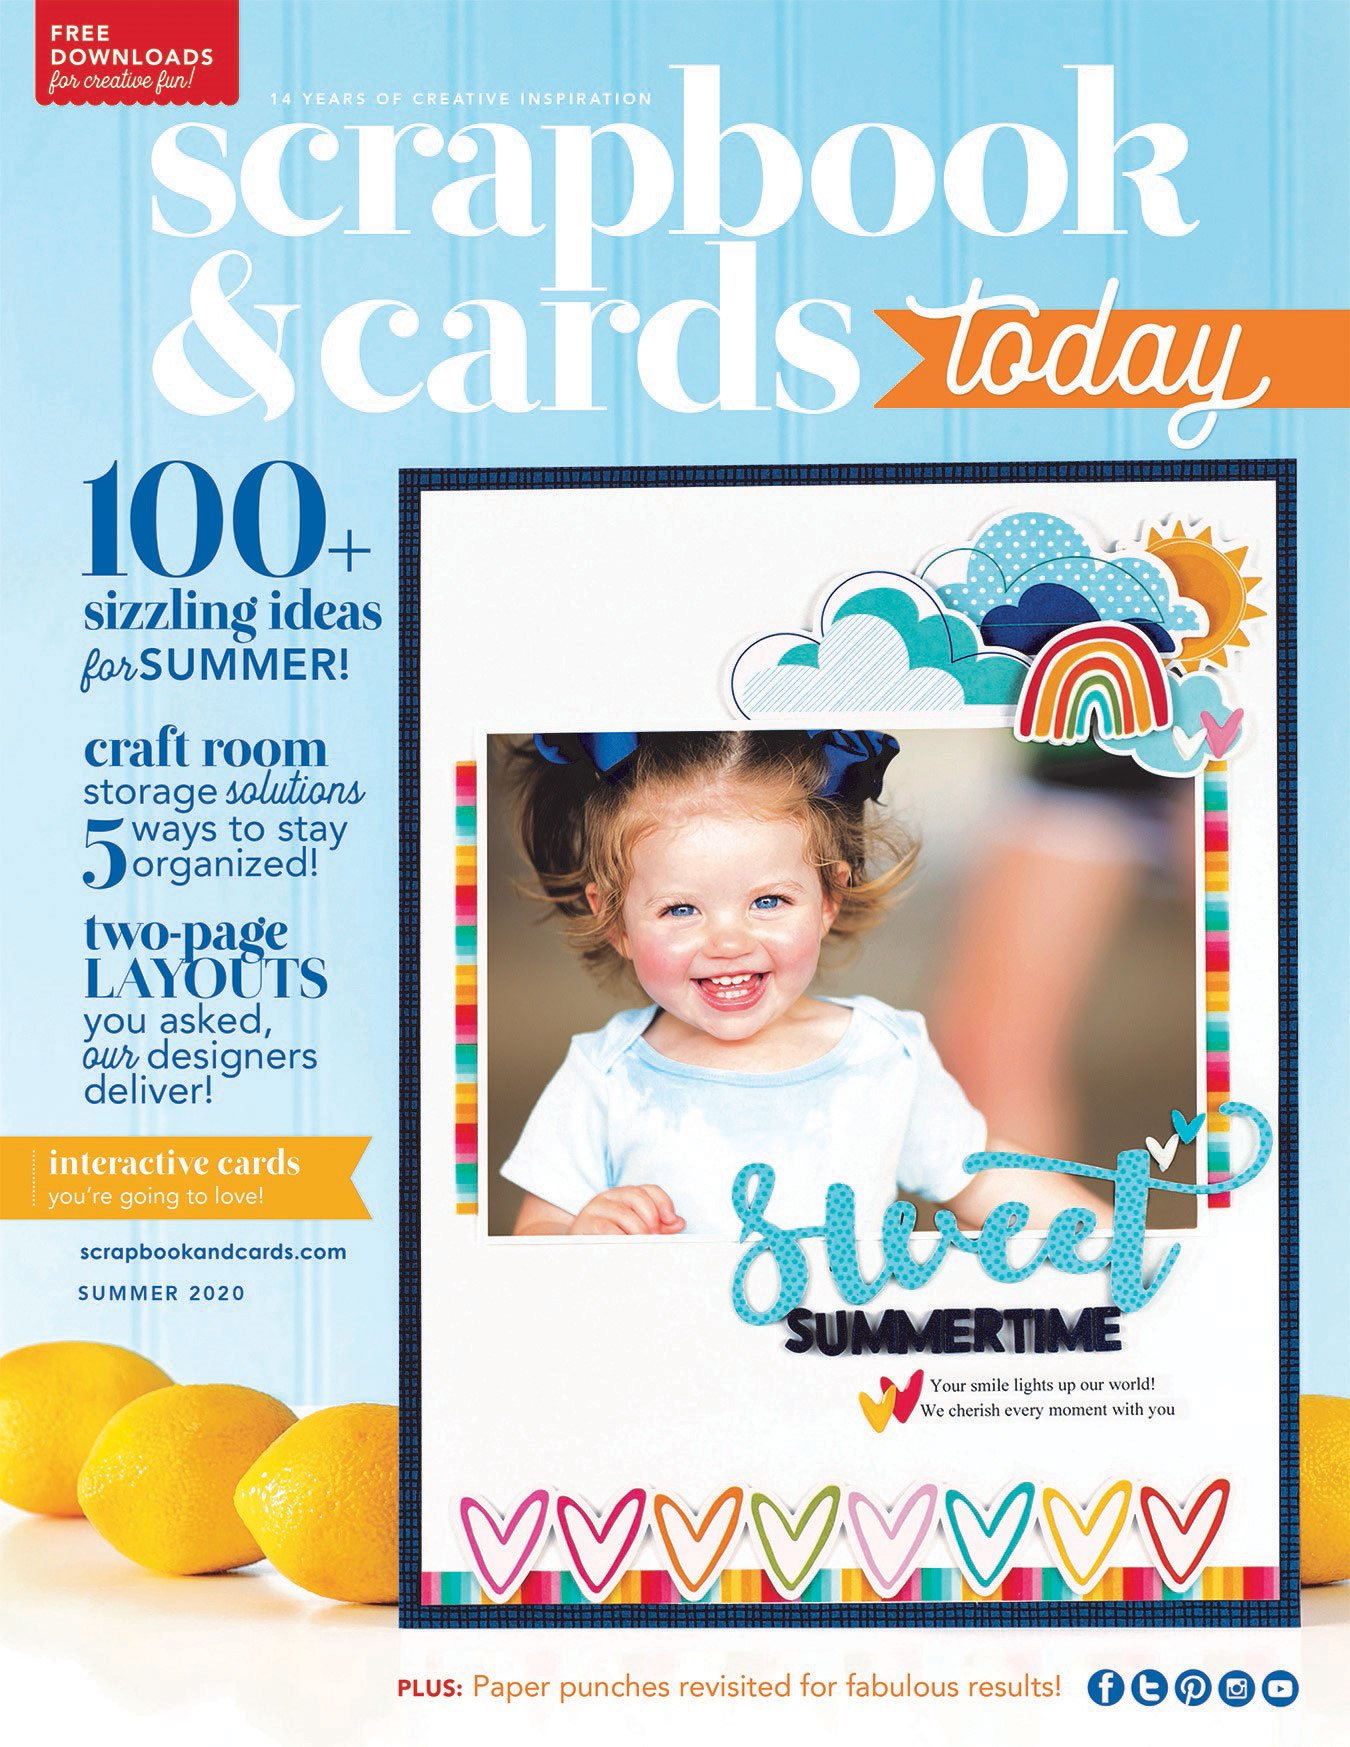 Scrapbook & Cards Today magazine - Summer 2020 Issue